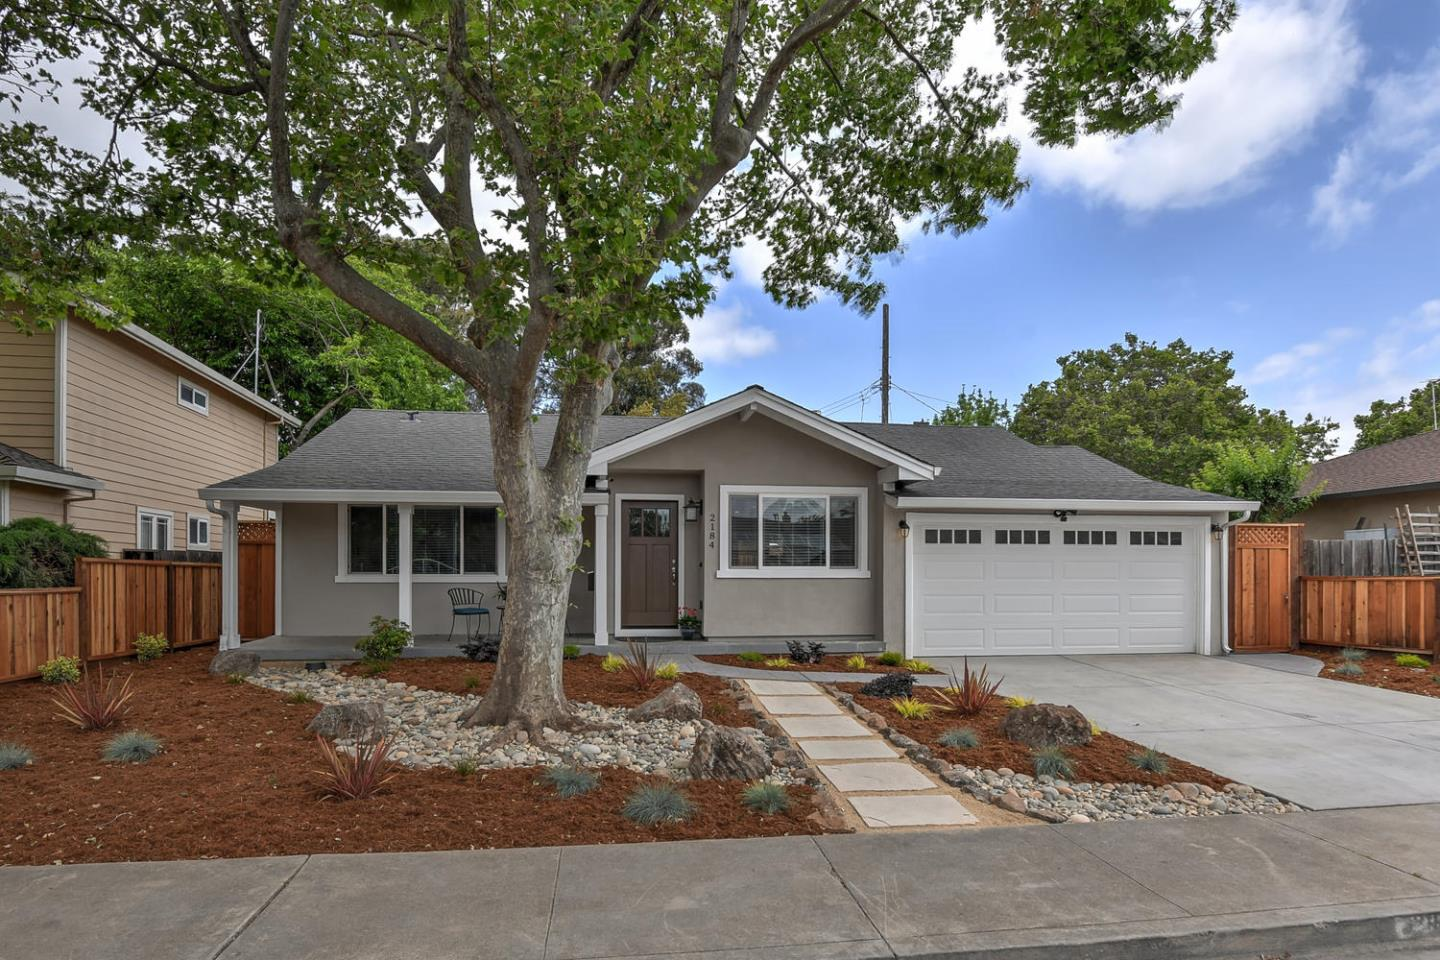 Detail Gallery Image 1 of 1 For 2184 Talia Ave, Santa Clara, CA 95050 - 3 Beds | 2 Baths